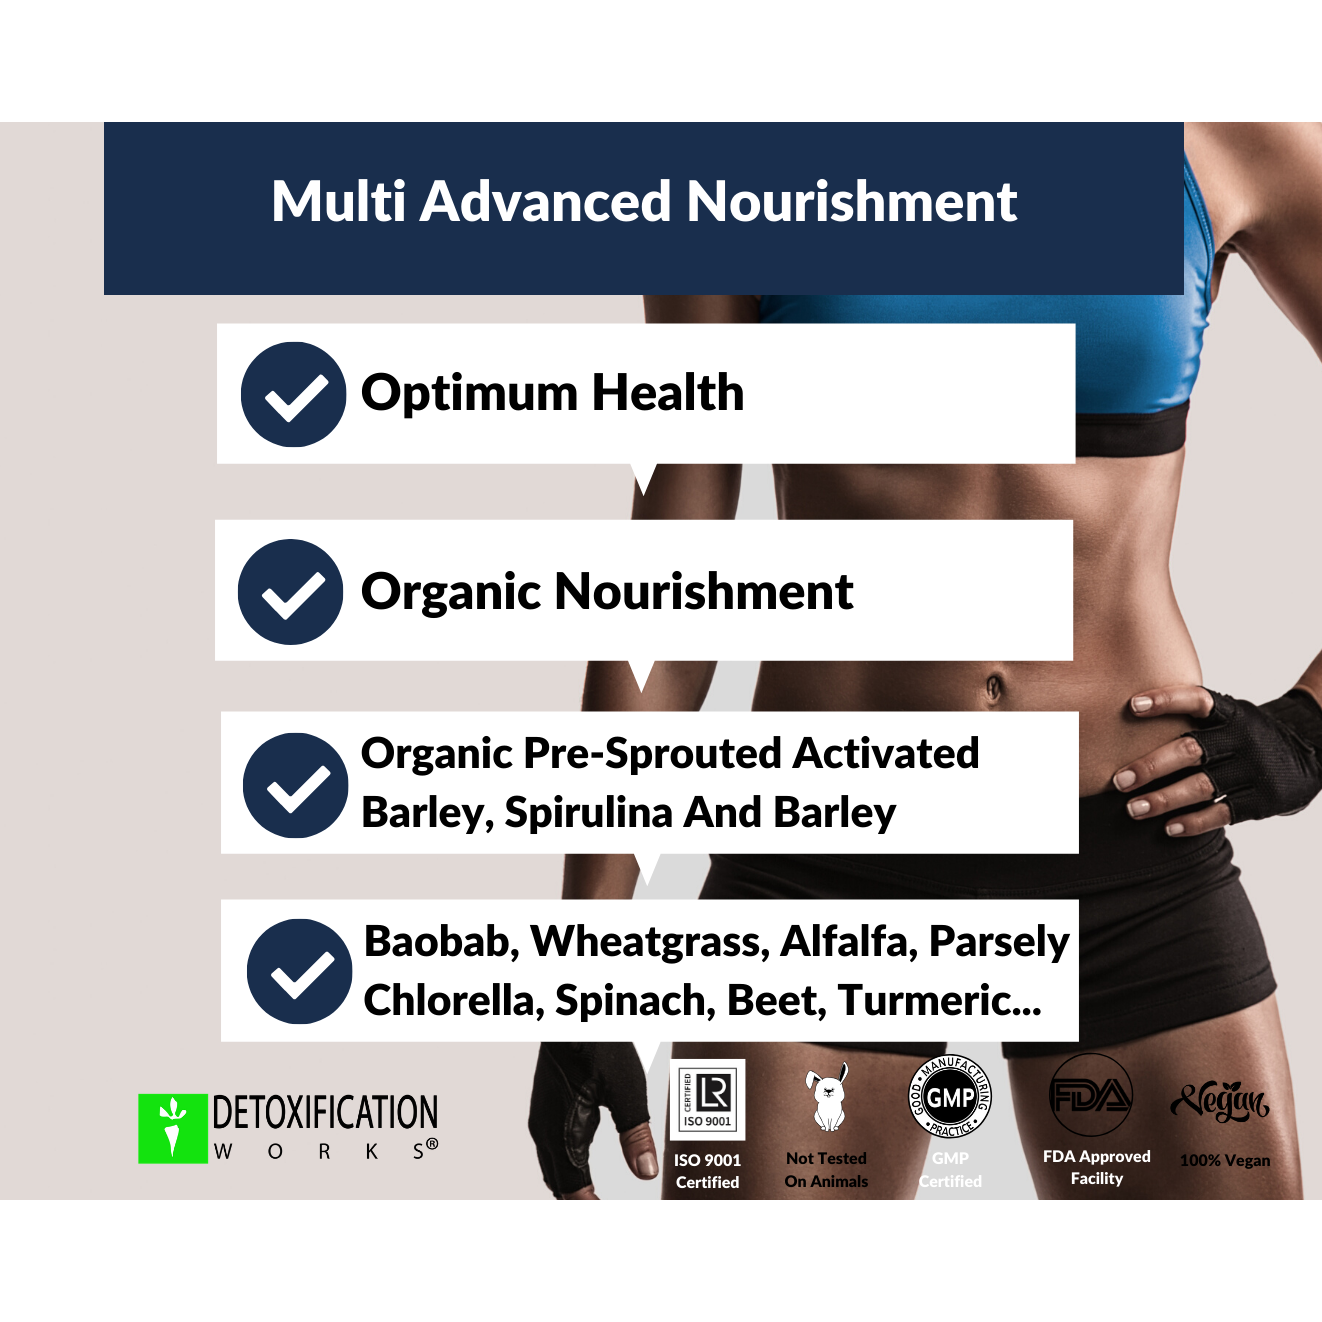 Multi Advanced Nourishment slide 5